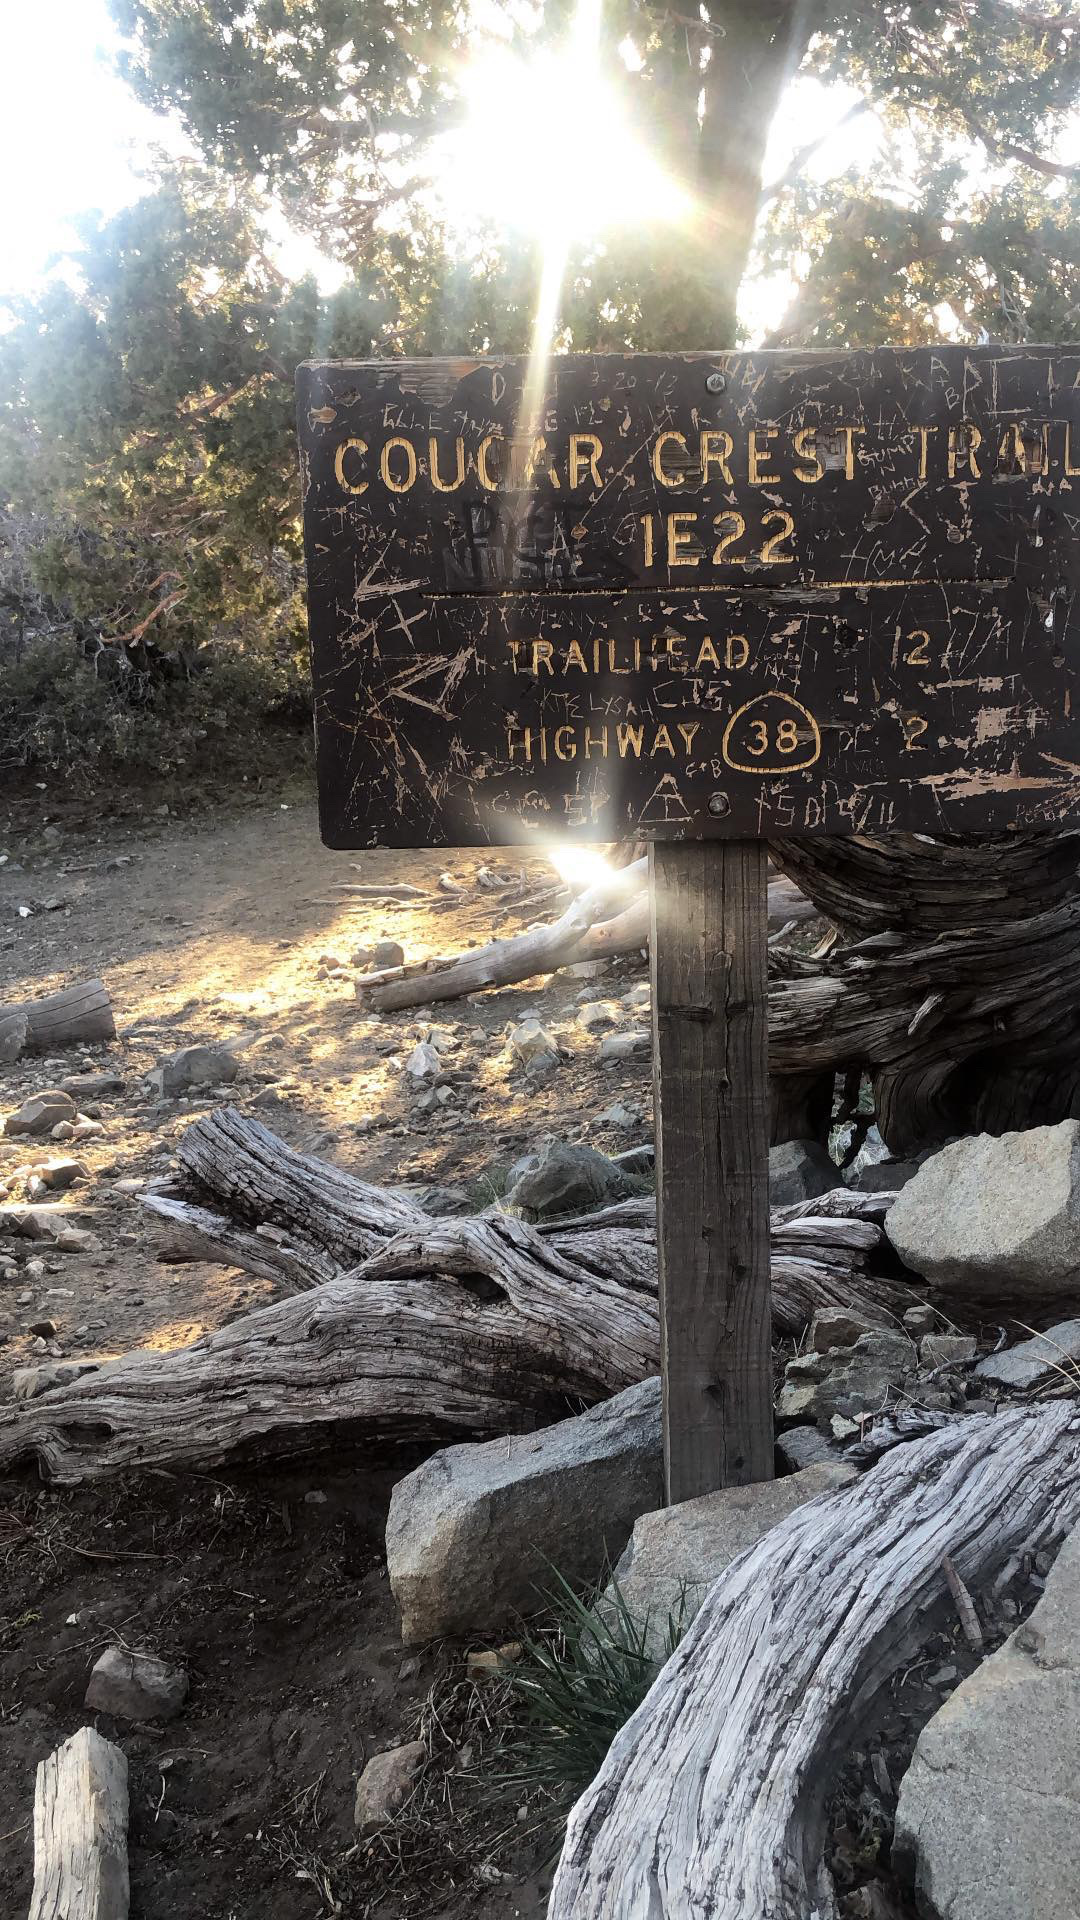 Bodies Found On Cougar Crest Trail